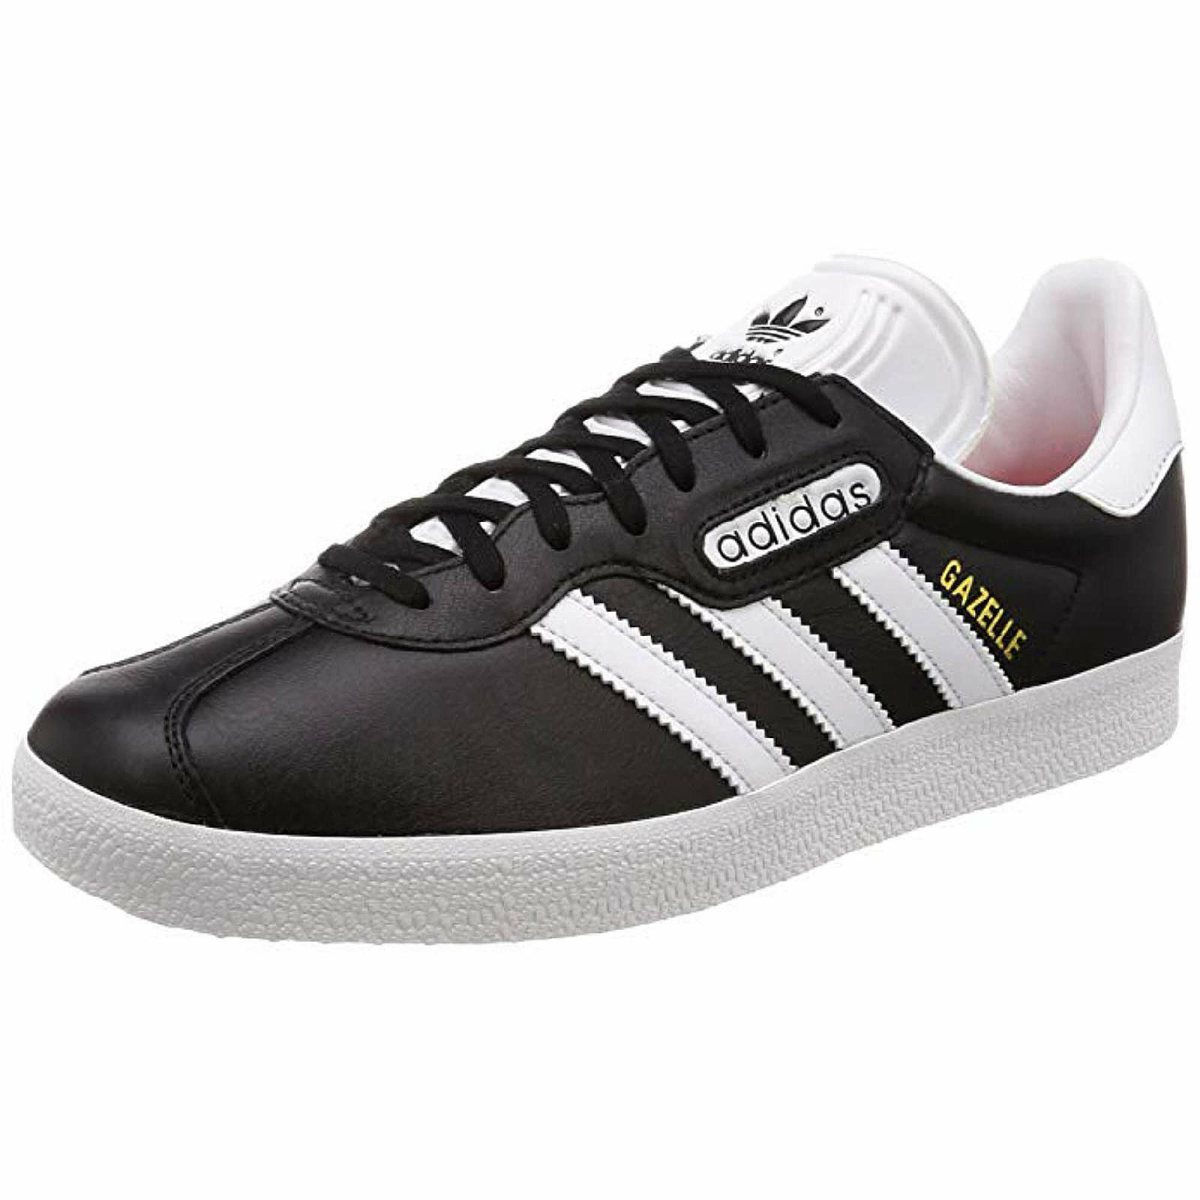 adidas Männer adizero Boston 8 Laufschuh core blackftw whitegrey six G28861